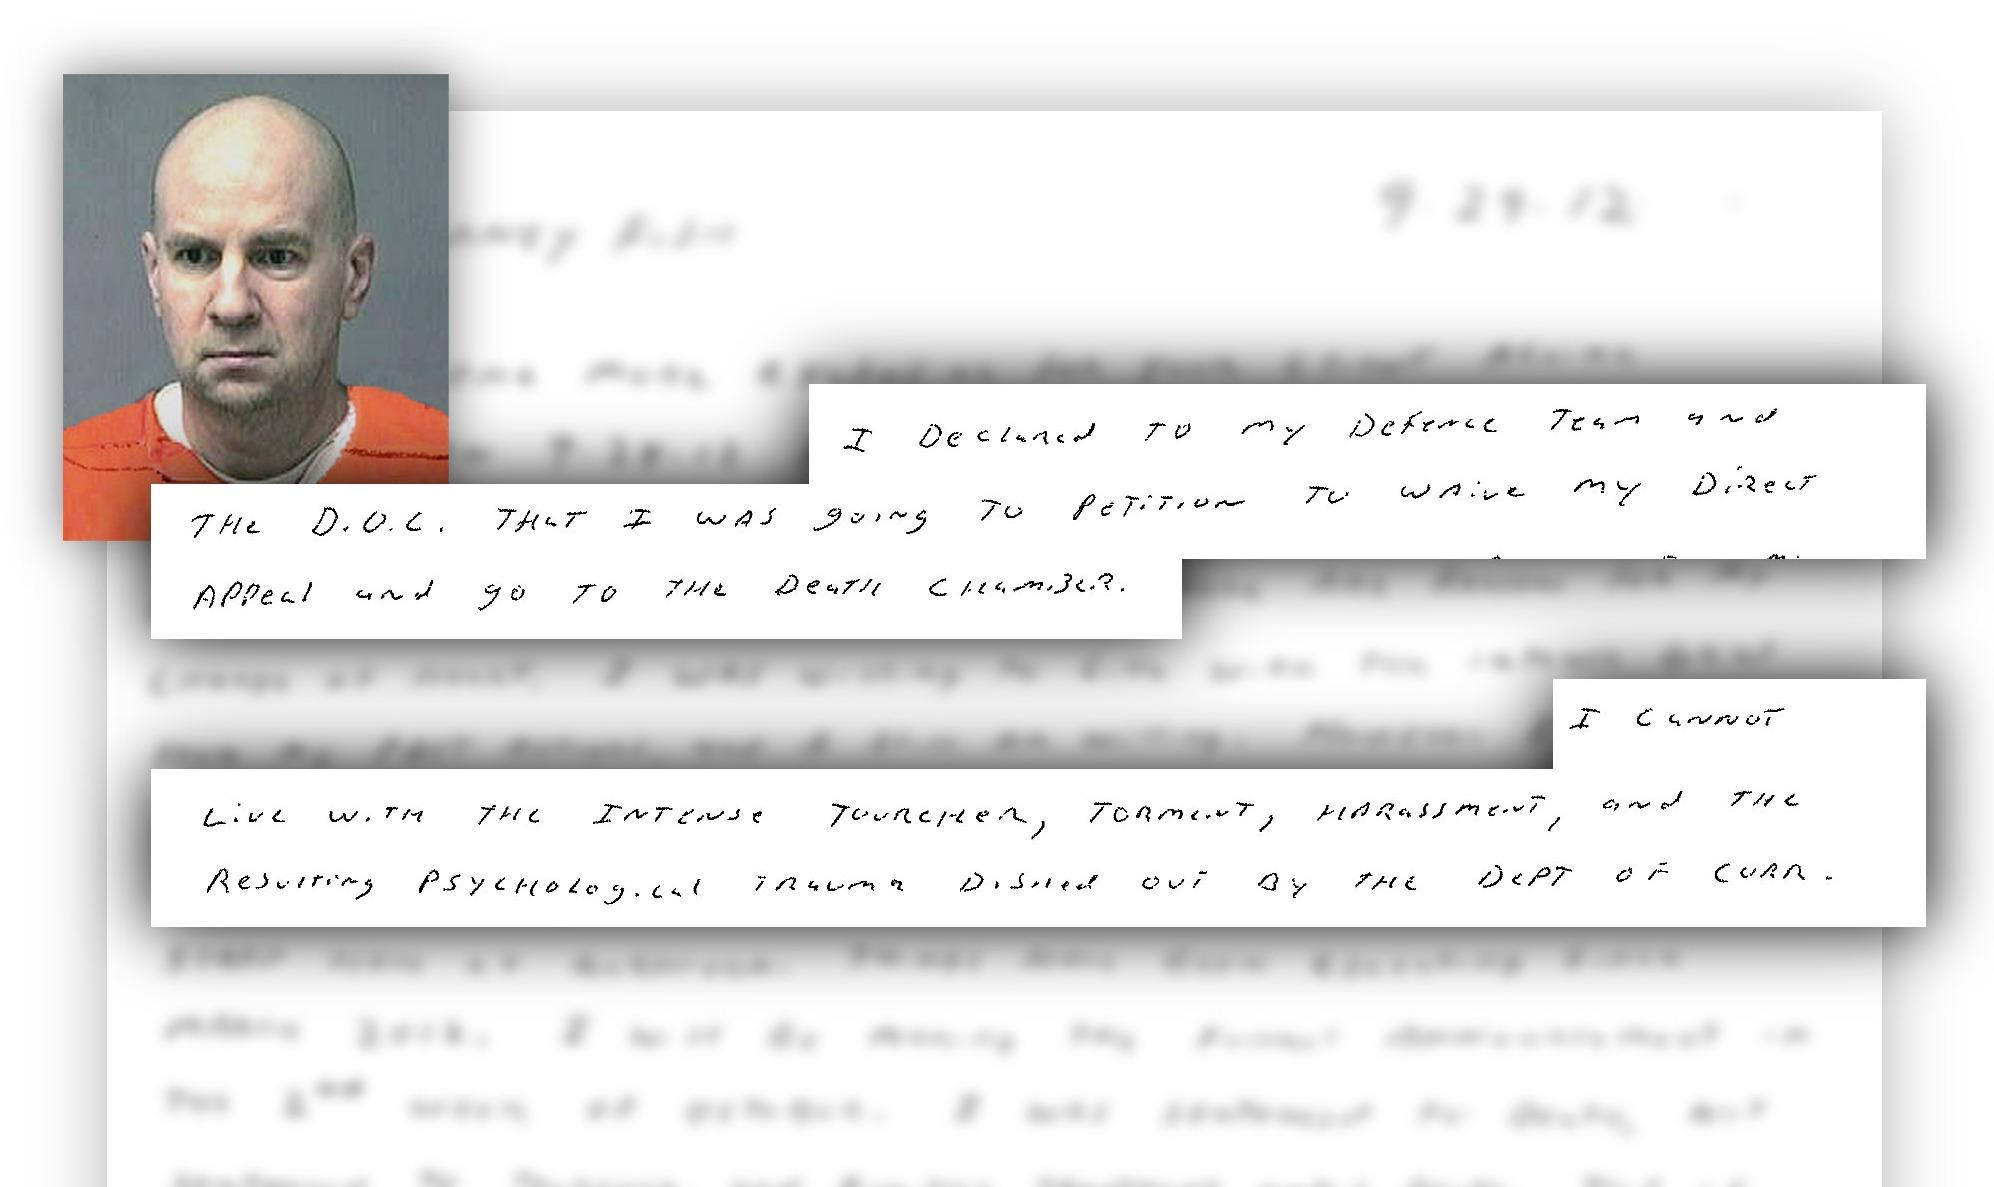 "Convicted murderer Steven Hayes mailed a letter to representatives of The Courant recently. The one-page letter, dated Sept. 29, 2012 was handwritten in small capital letters except his signature. Following are two key excerpts, the rest of the letter was blurred because of privacy issues.  ""I declared to my defense team and the DOC that I was going to petition to waive my direct appeal and go to the death chamber.""  ""I cannot live with the intense tourcher [sic], torment, harrassment, and the resulting psychological trauma dished out by the Dept. of Corr. staff here at Northern."""